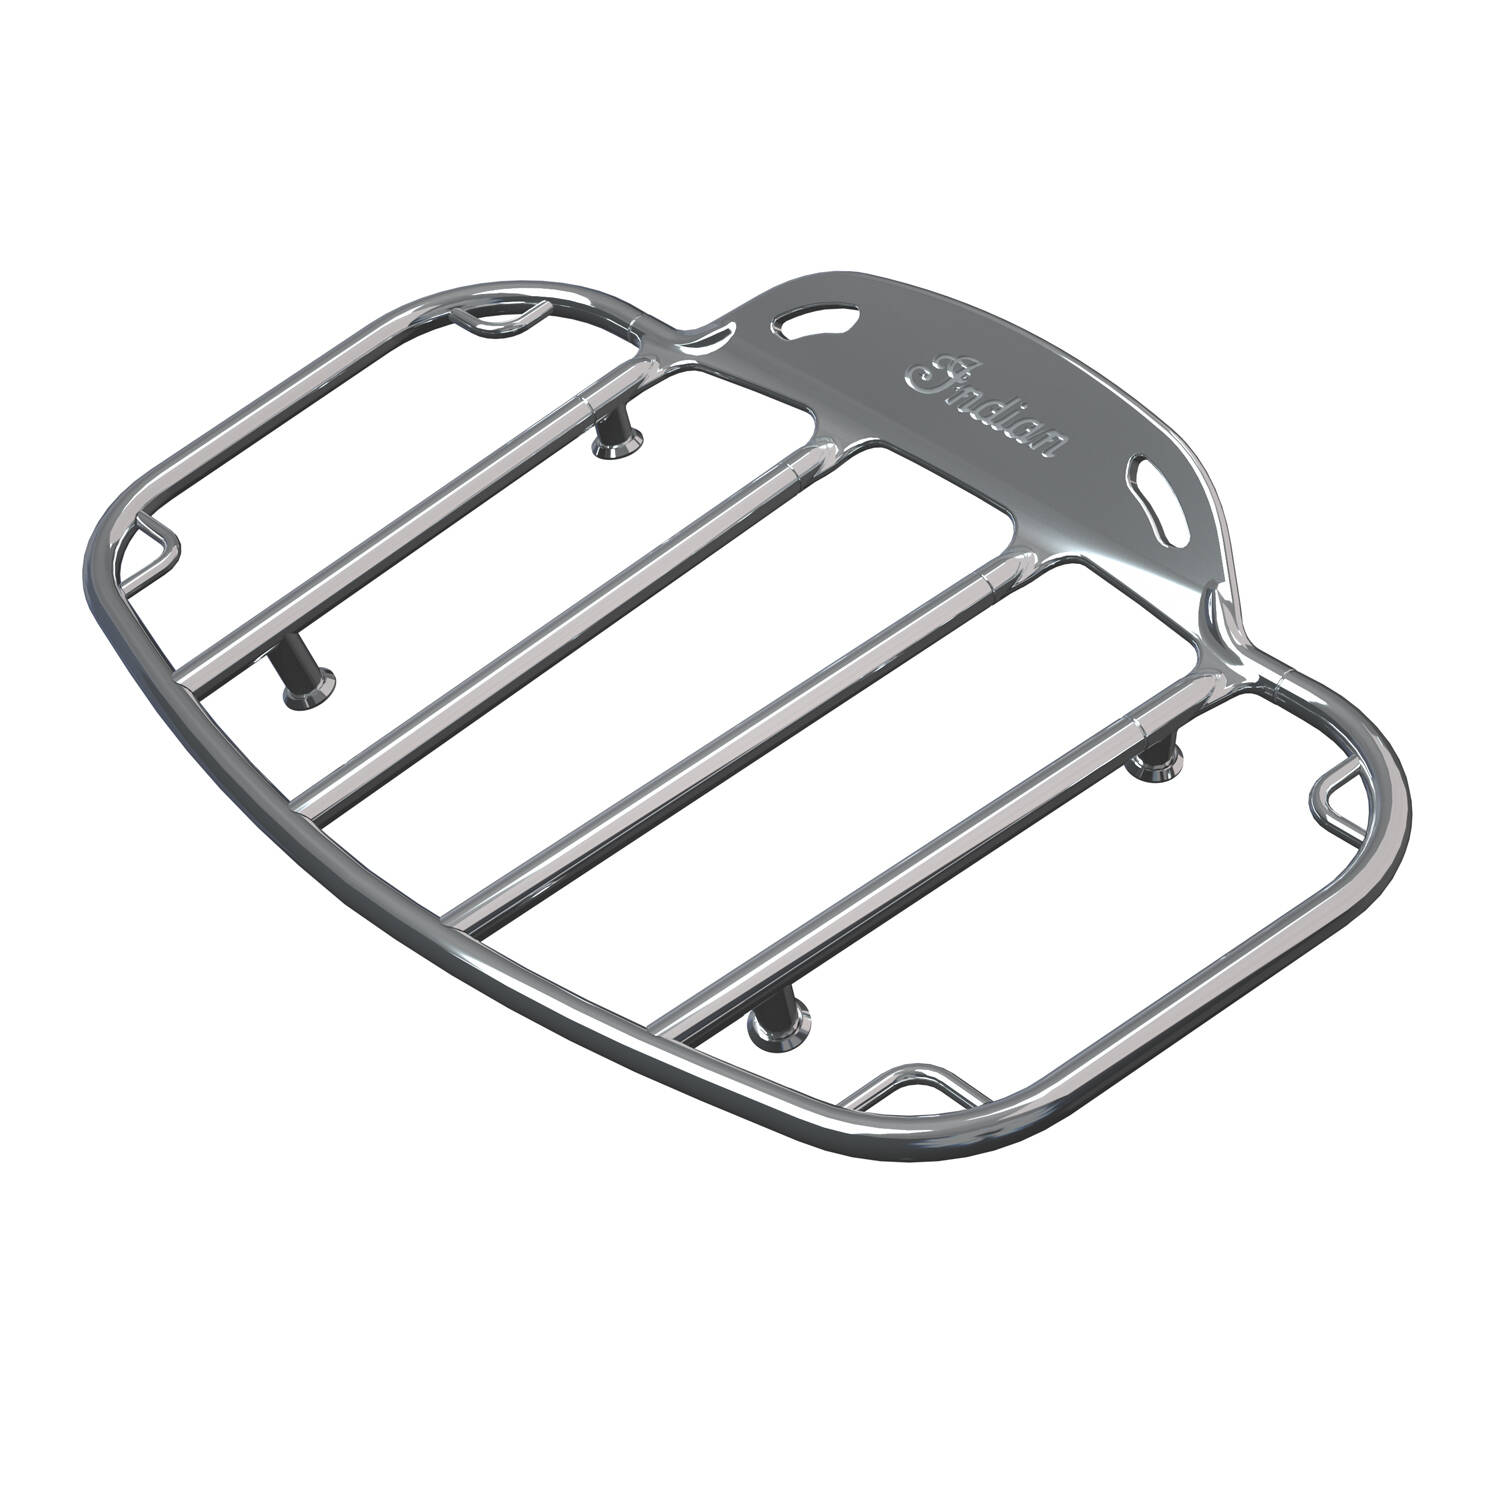 Pinnacle Trunk Rack - Chrome